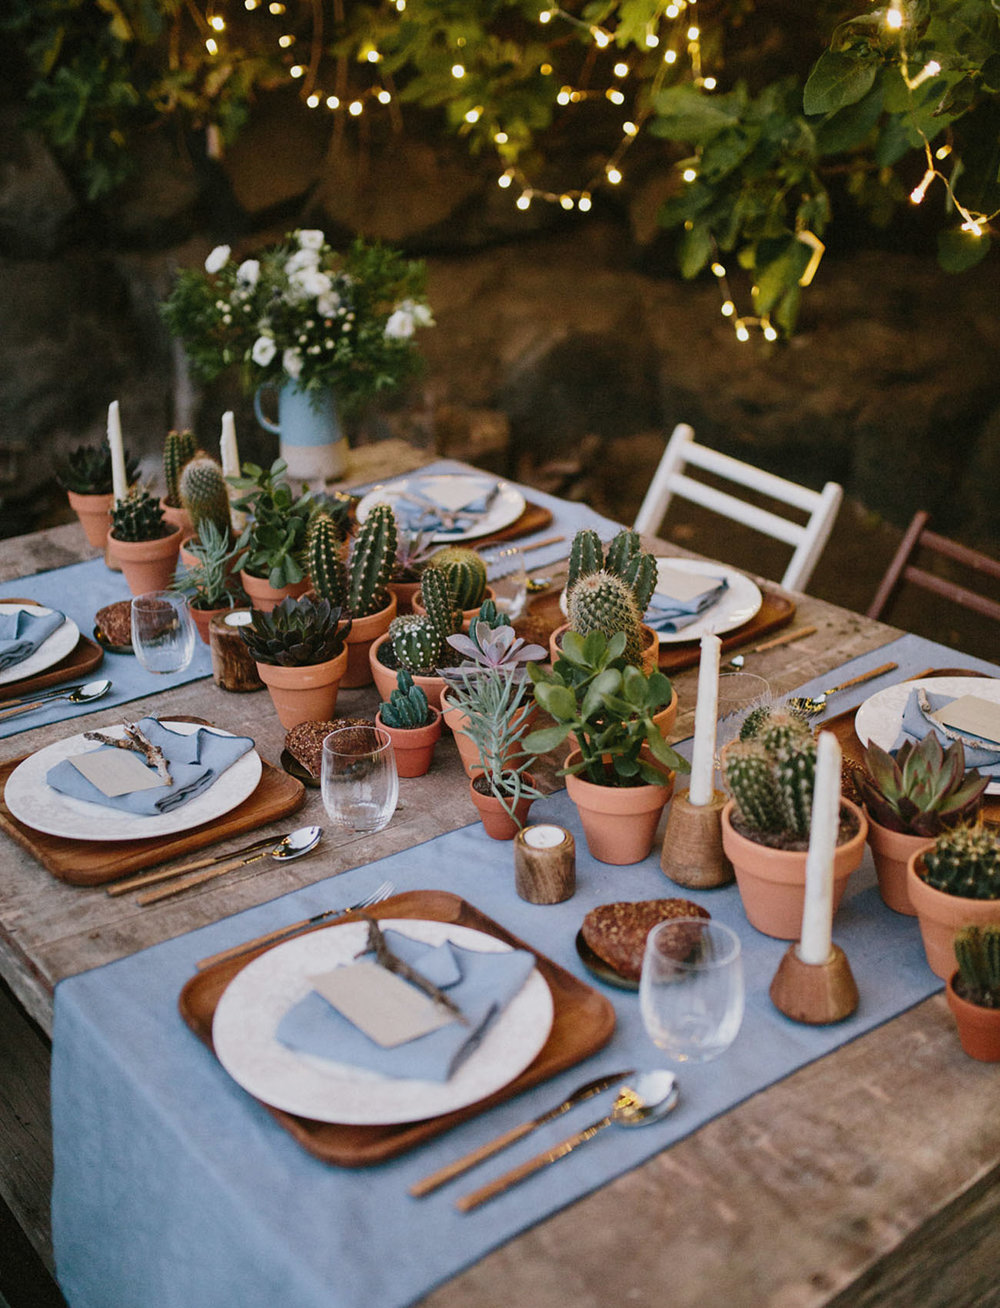 Create a fun table runner with cactus in cute clay pots. As seen in Cactus Wedding Ideas - a hot wedding trend on www.BrendasWeddingBlog.com